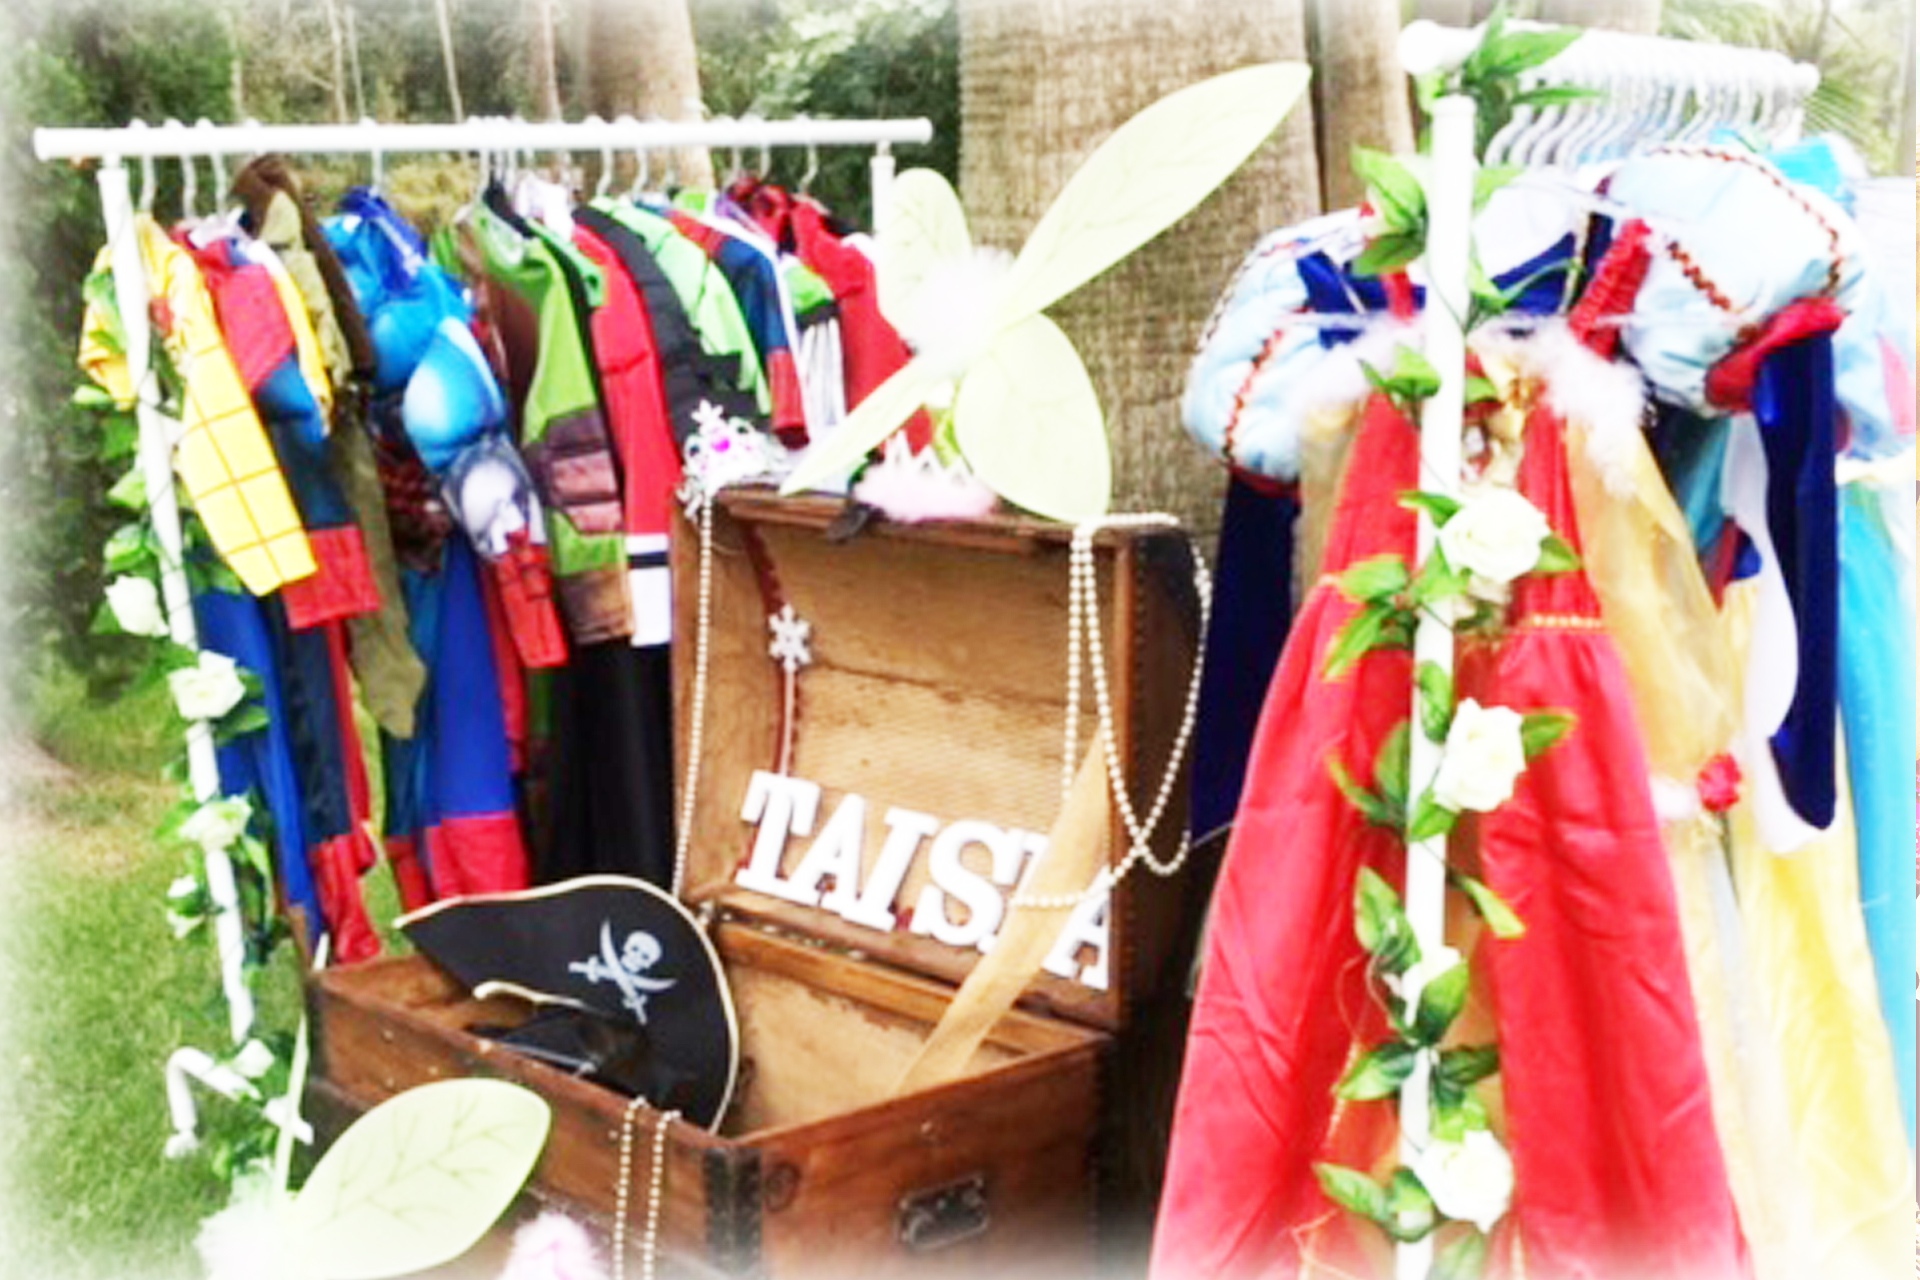 Children's Dress Up Area - Fairytale Ibiza, childrens parties & events in Ibiza